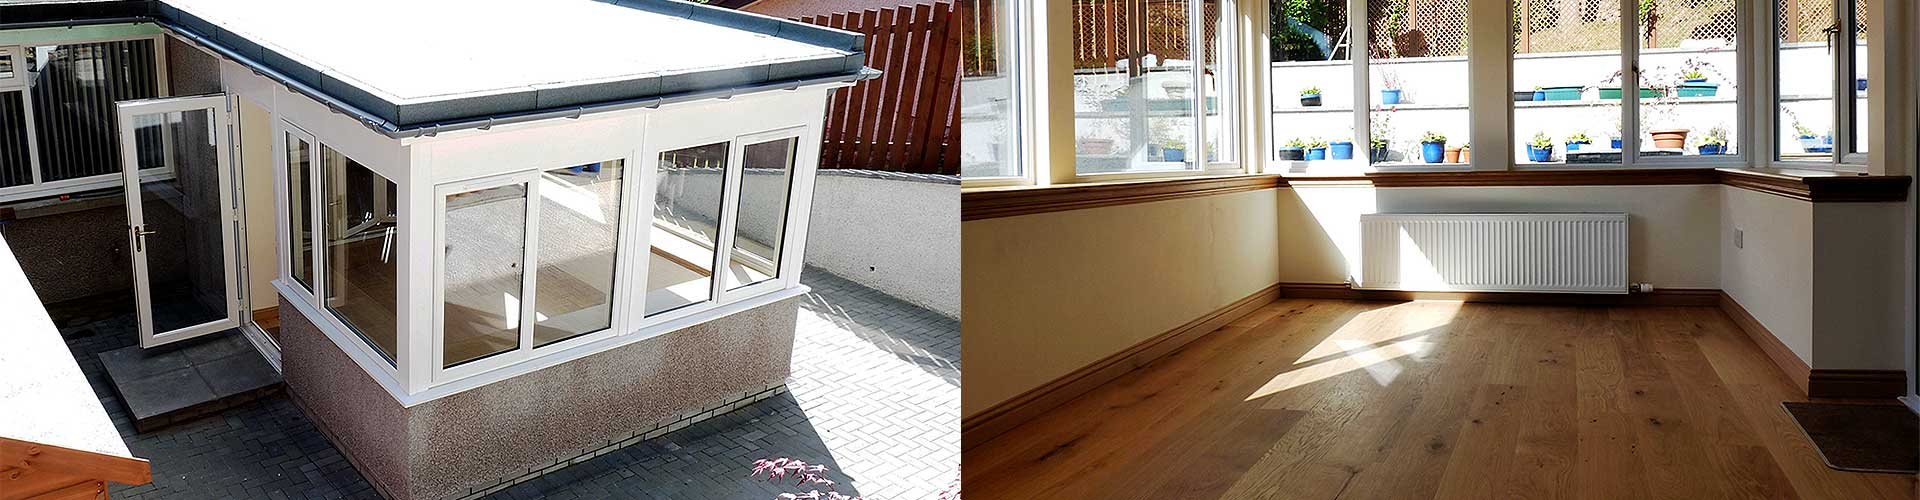 Thistle Home Extensions Aberdeen & Aberdeenshire: Flat Roof Extensions